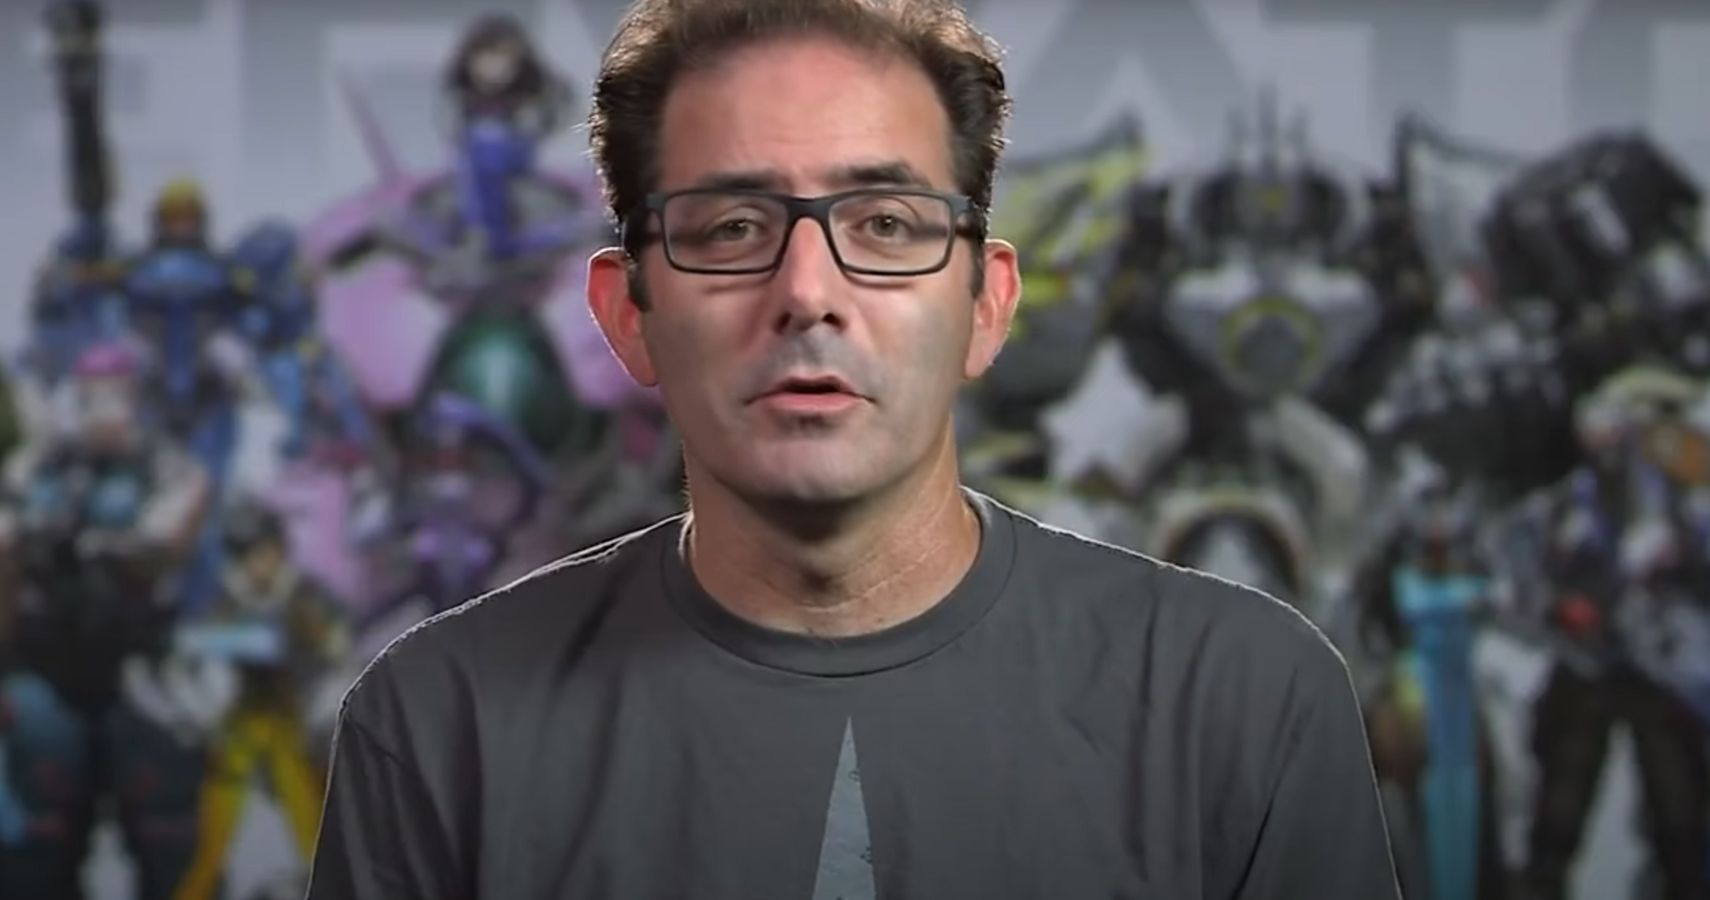 Overwatch Director Jeff Kaplan Has Left Blizzard